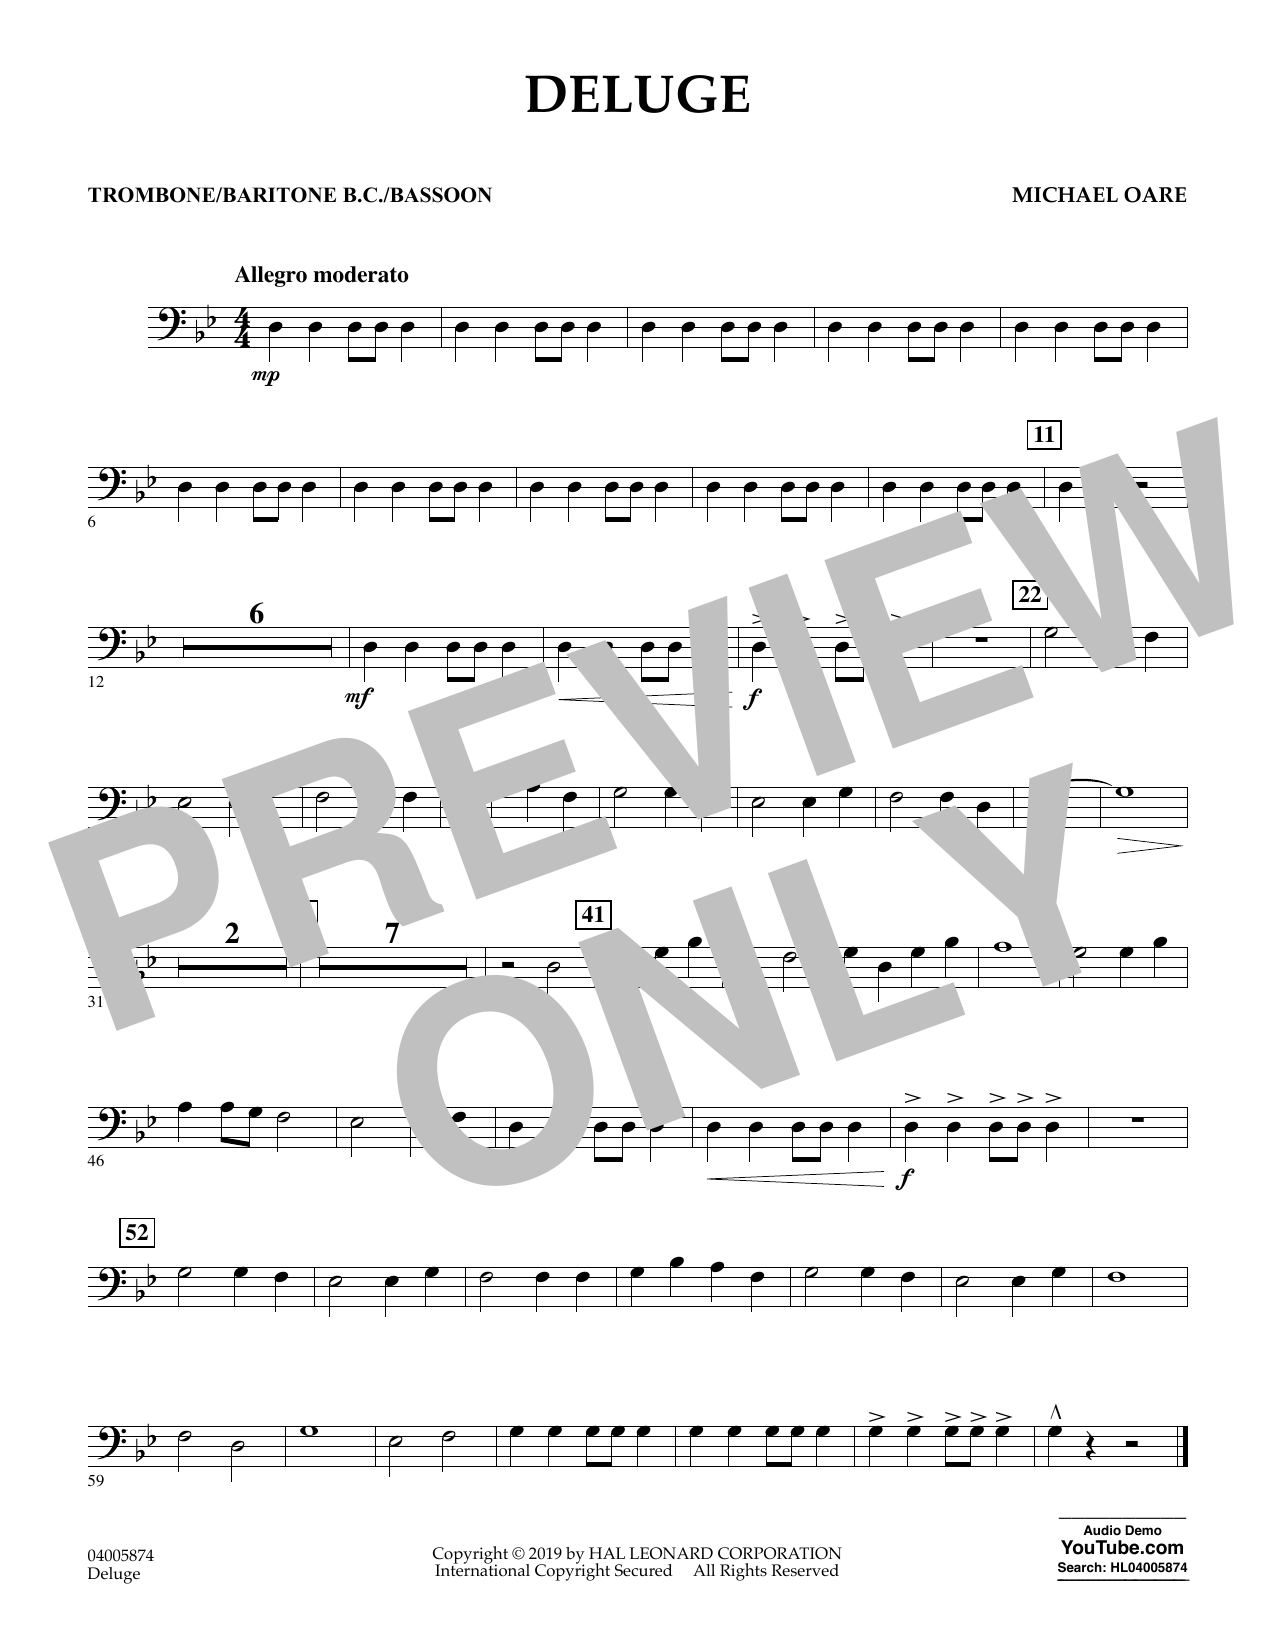 Michael Oare Deluge - Trombone/Baritone B.C./Bassoon sheet music preview music notes and score for Concert Band including 1 page(s)